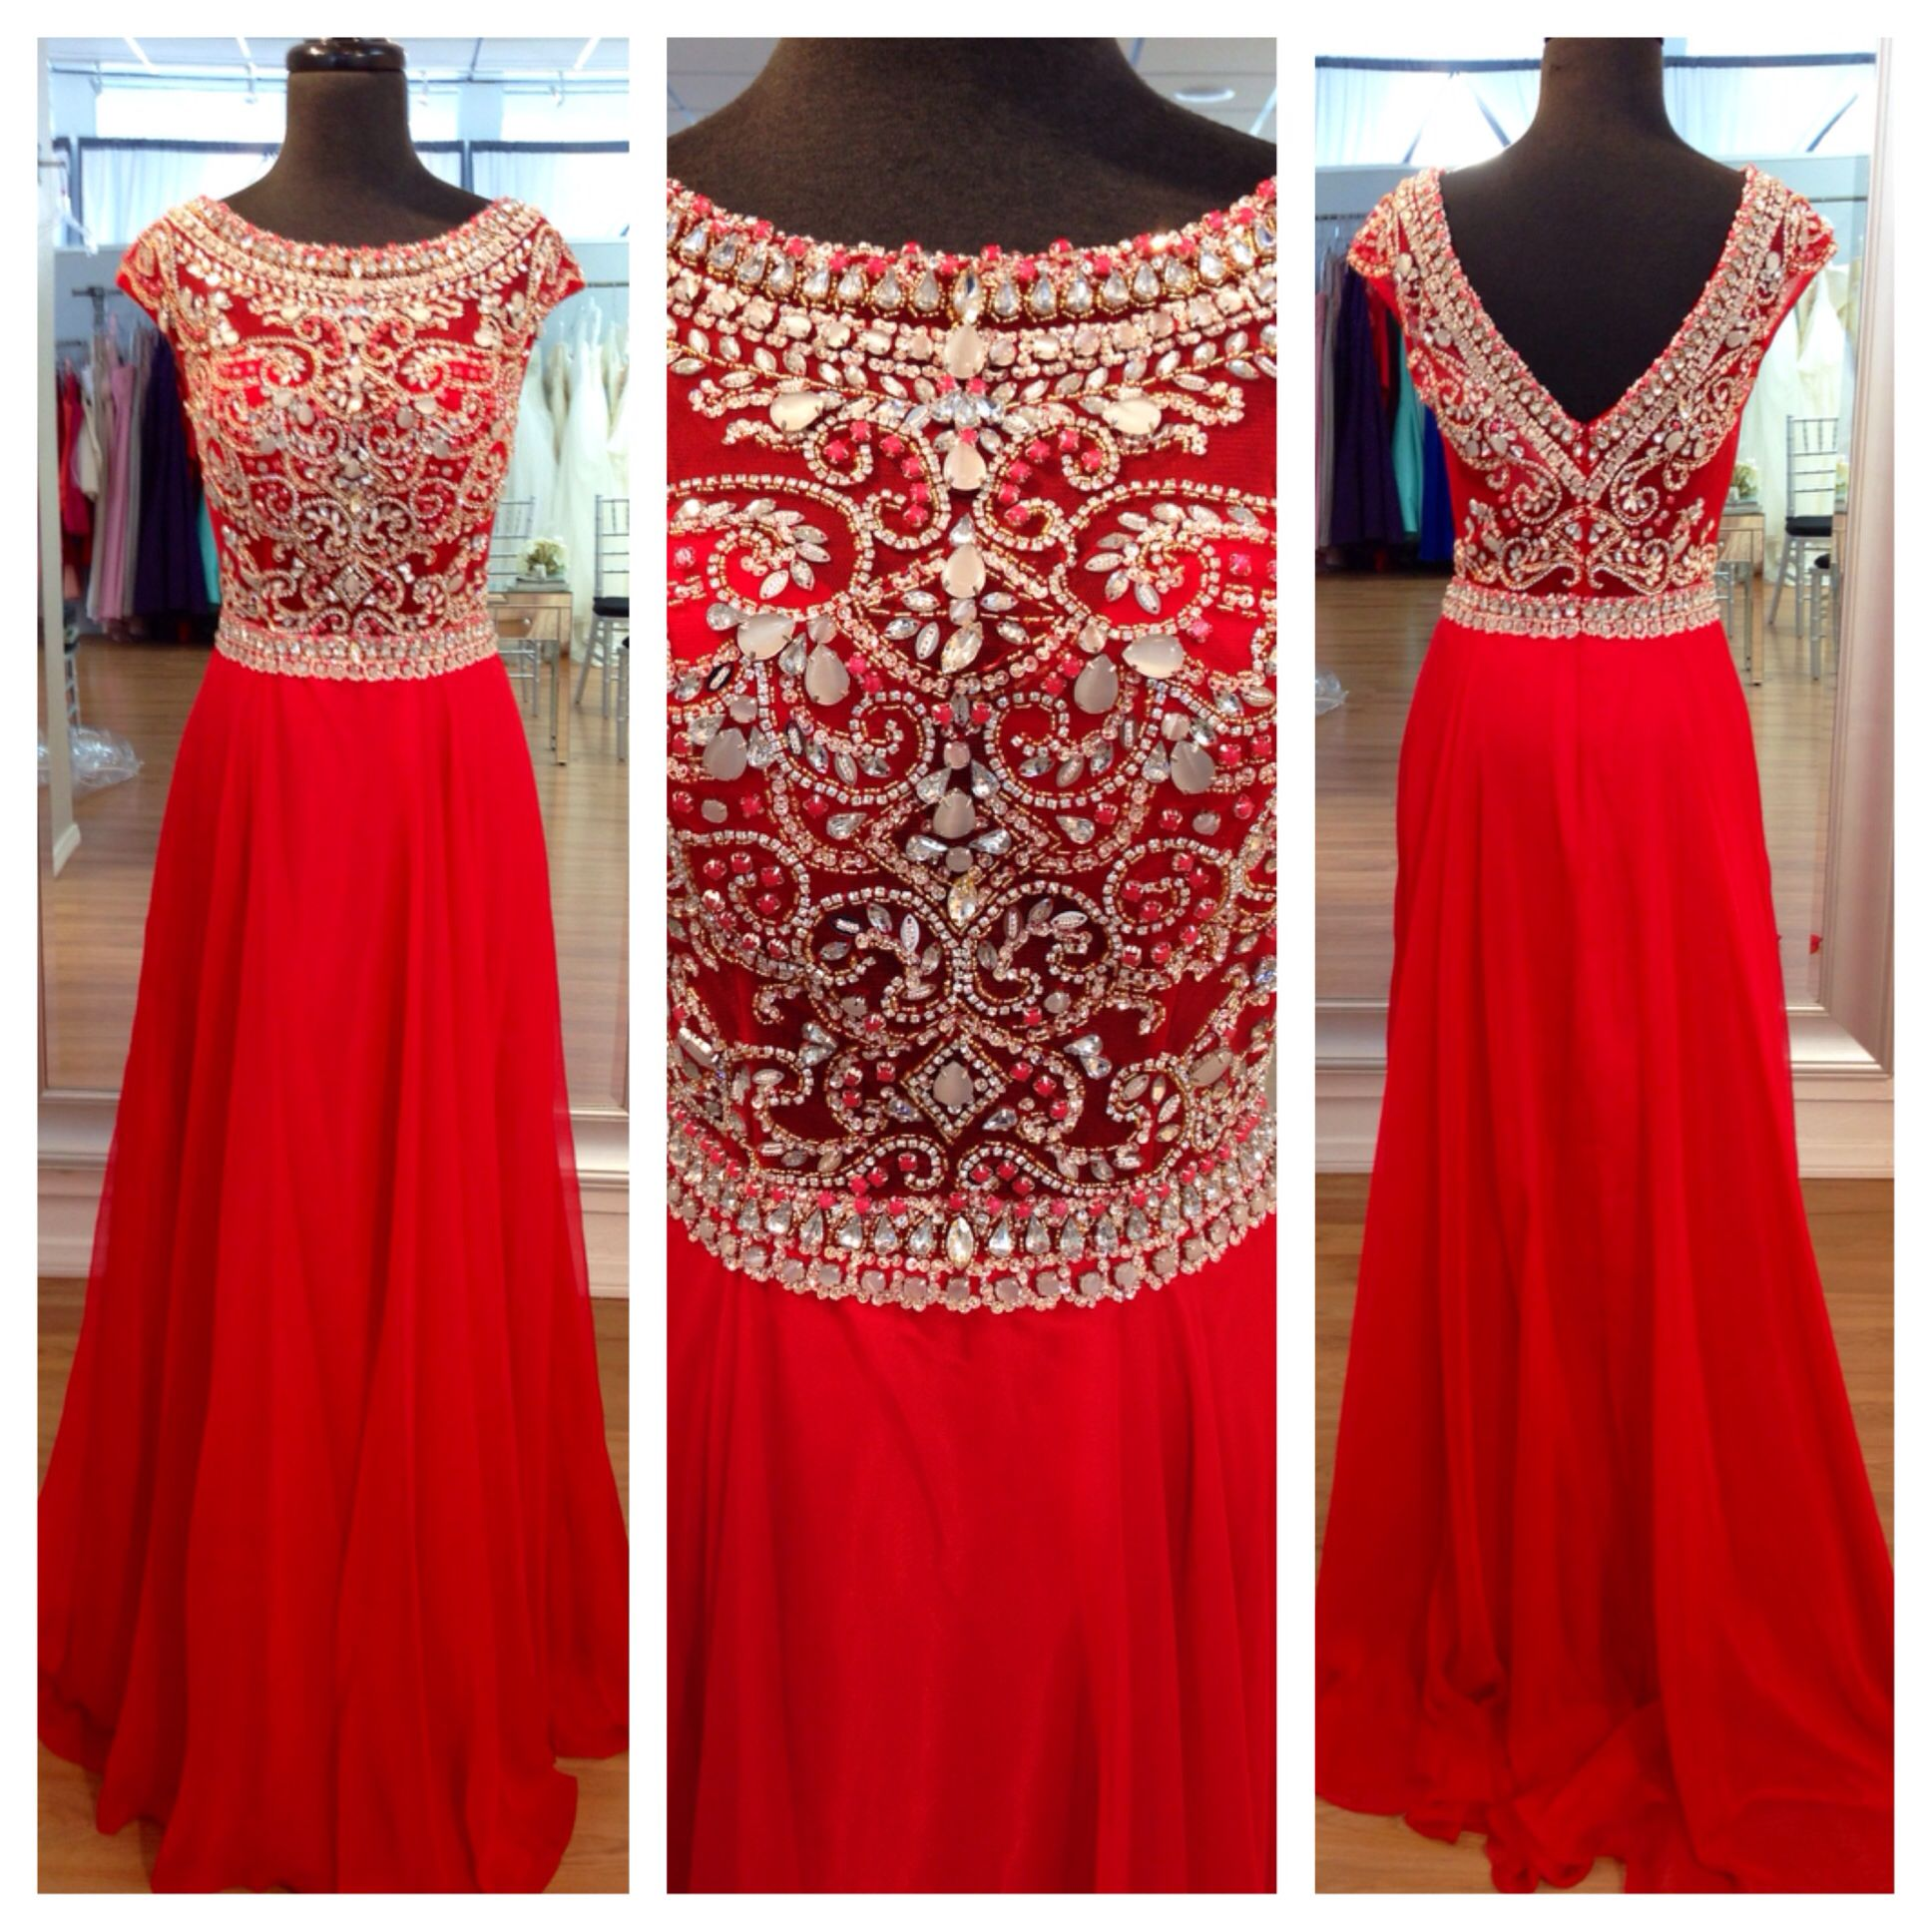 Jovani for available in red aqua and nude